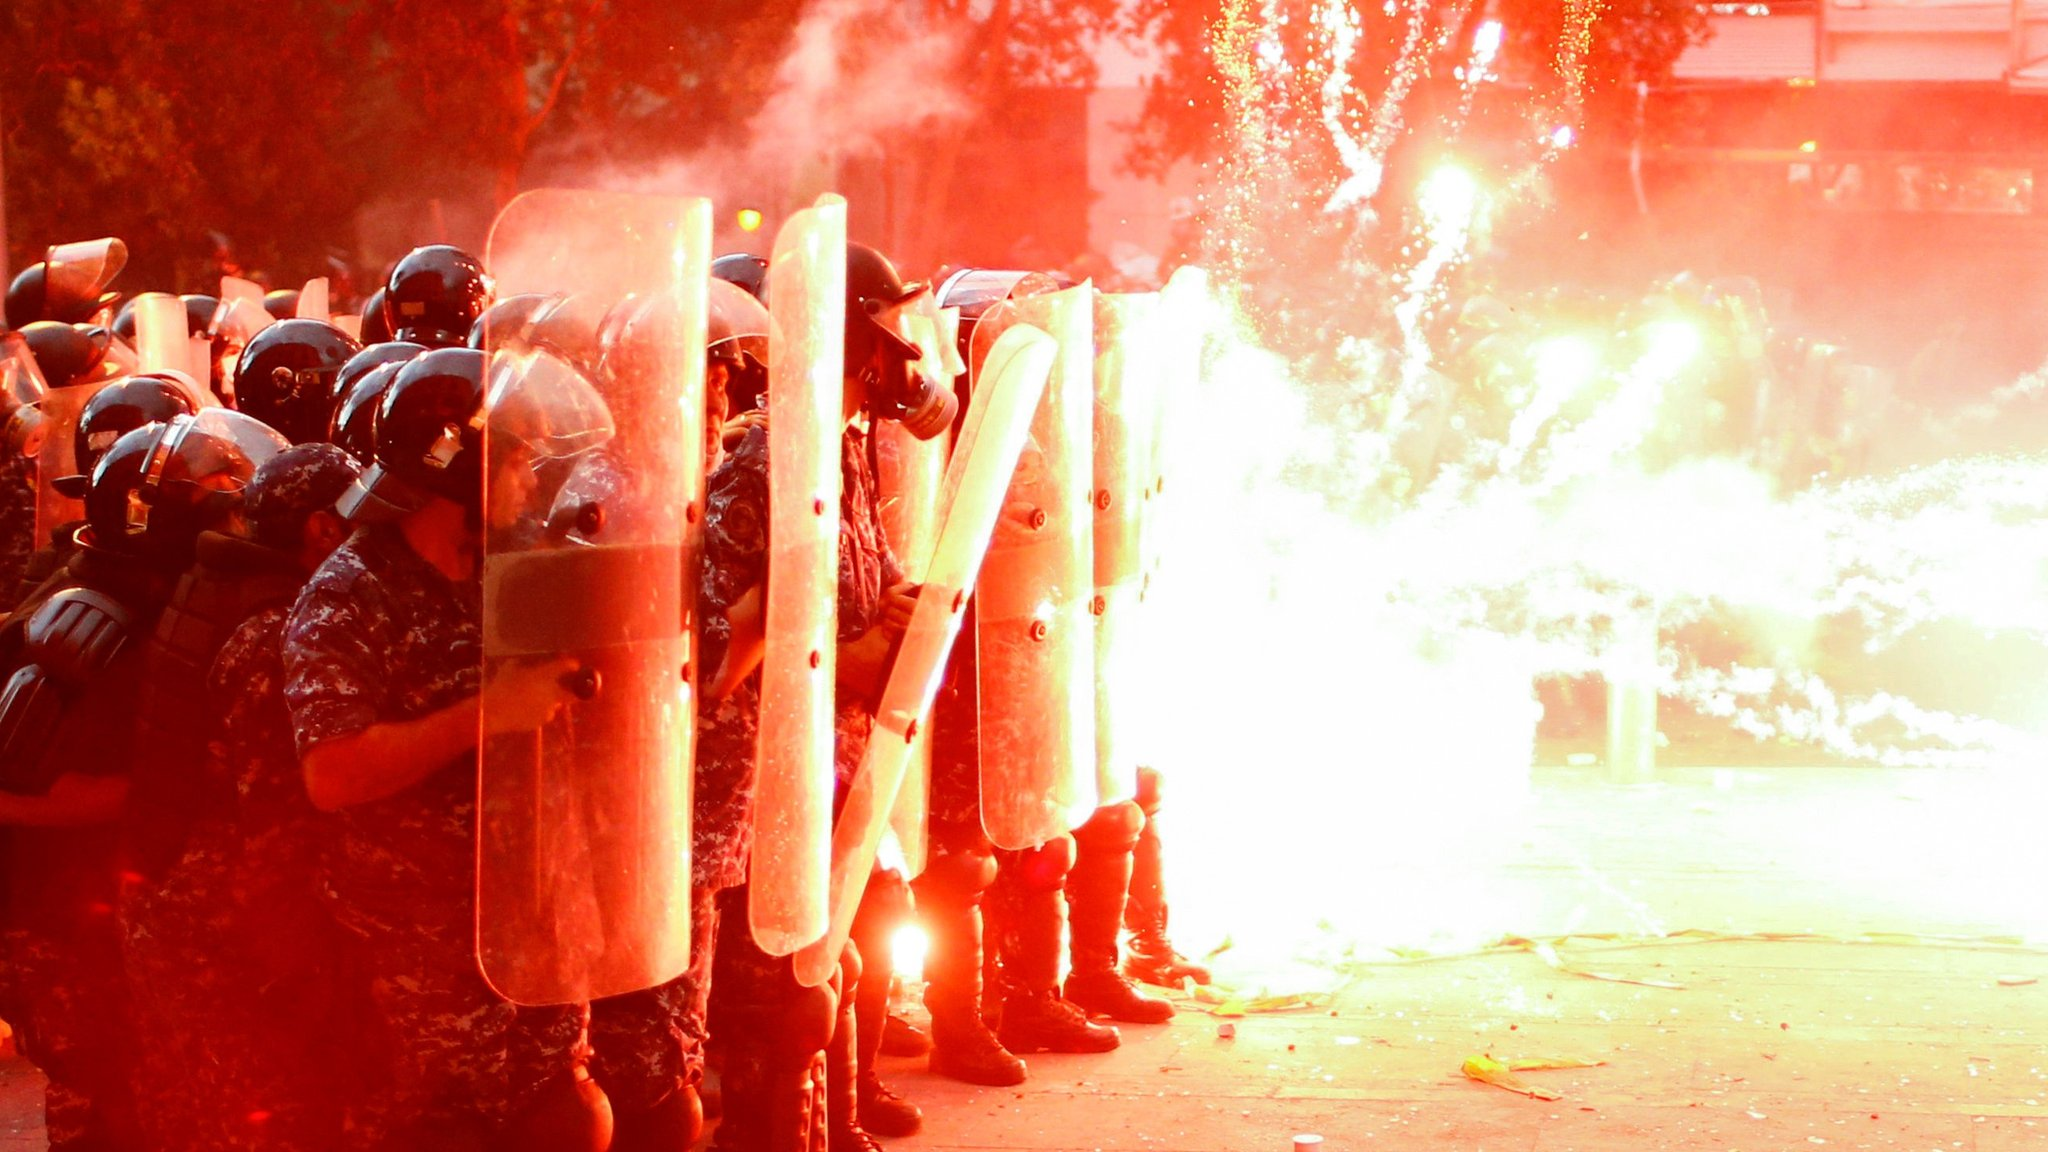 Fireworks launched by anti-government protesters hit the shields of riot police officers in Beirut on 10 August 2020